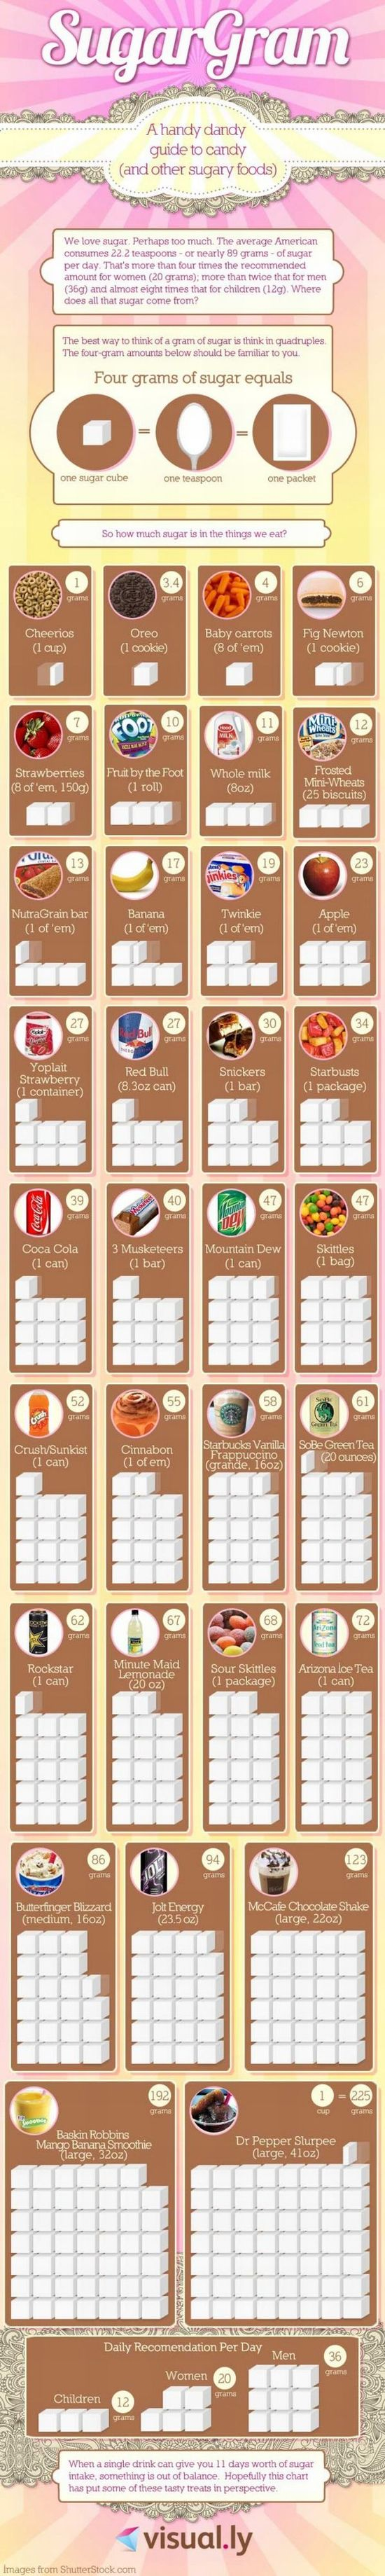 Lowdown on Sugar Grams from Ragan's Health Care Communication News